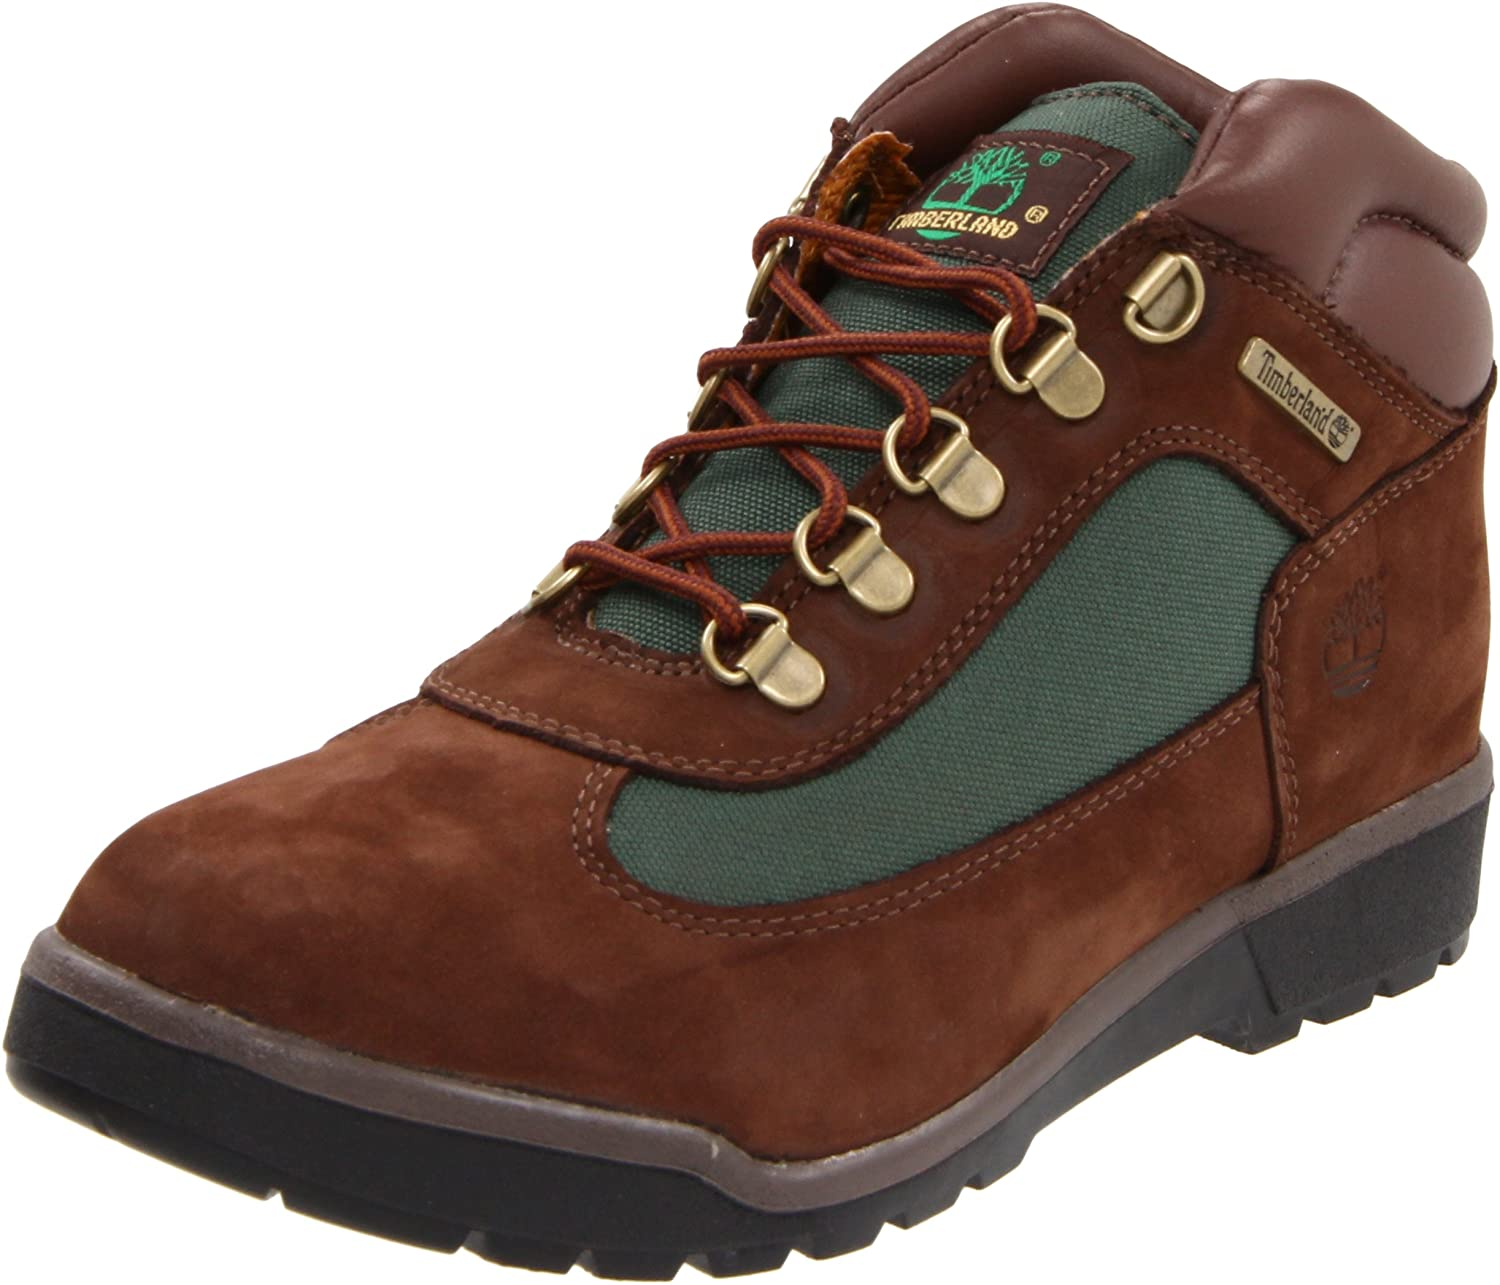 Timberland ユニセックスキッズ B002U39SGW 12.5 M US Little Kid|Brown/Olive/Brown Brown/Olive/Brown 12.5 M US Little Kid